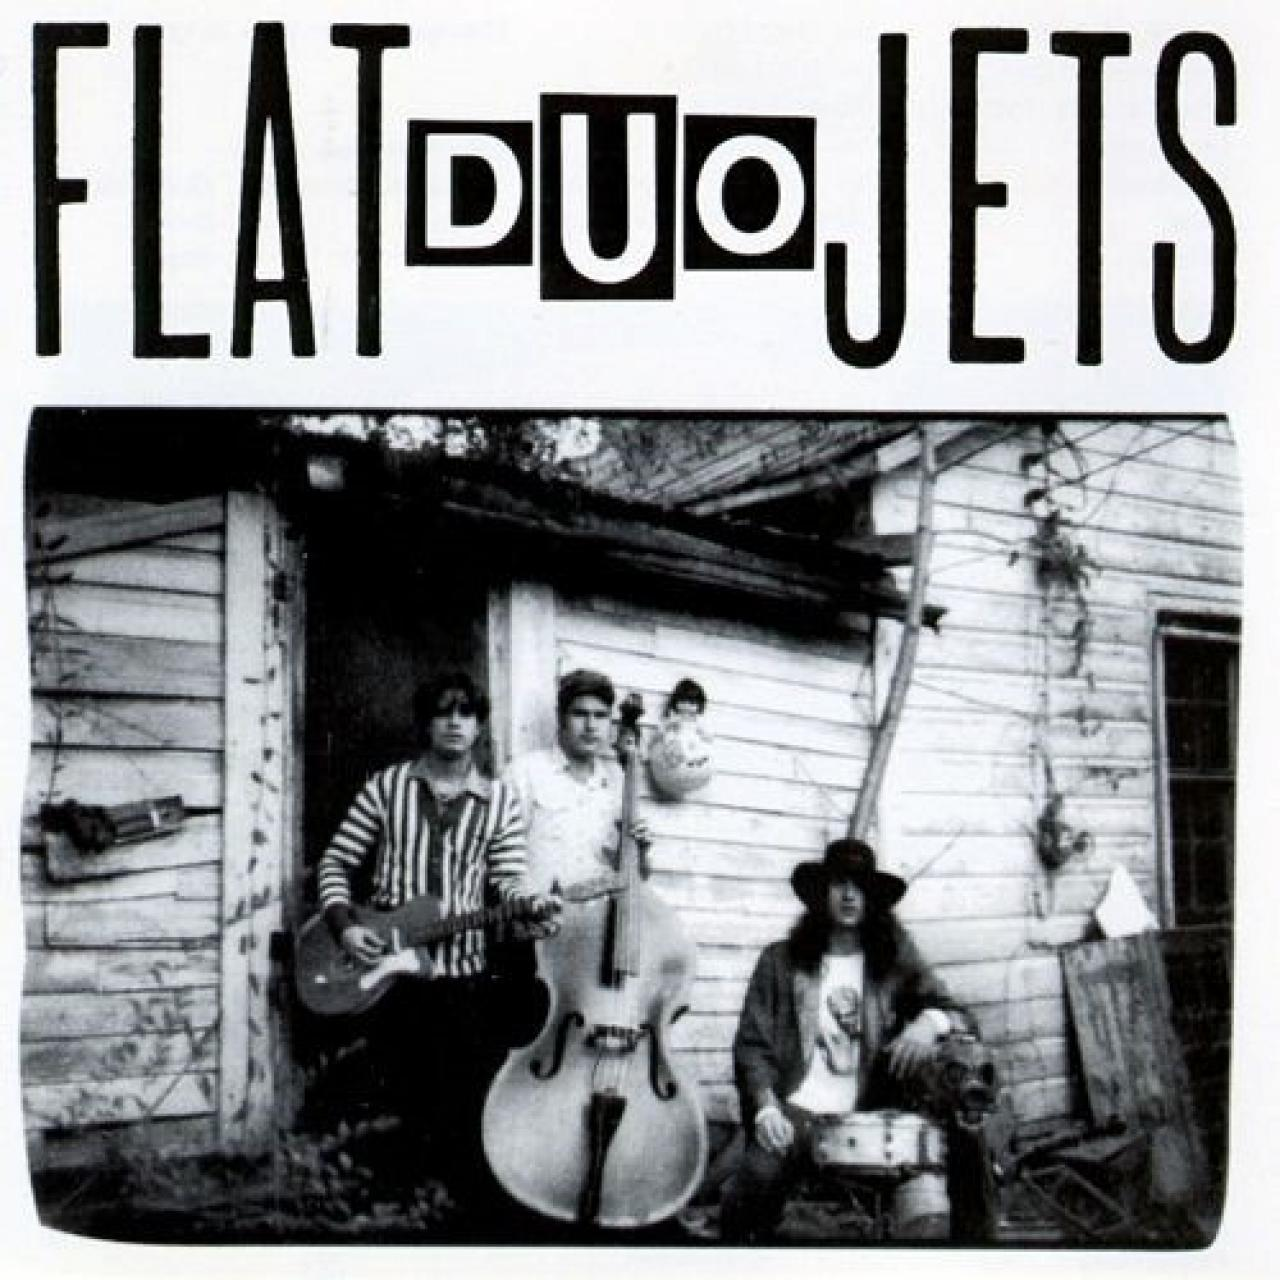 Flat Duo Jets eponymous debut album cover